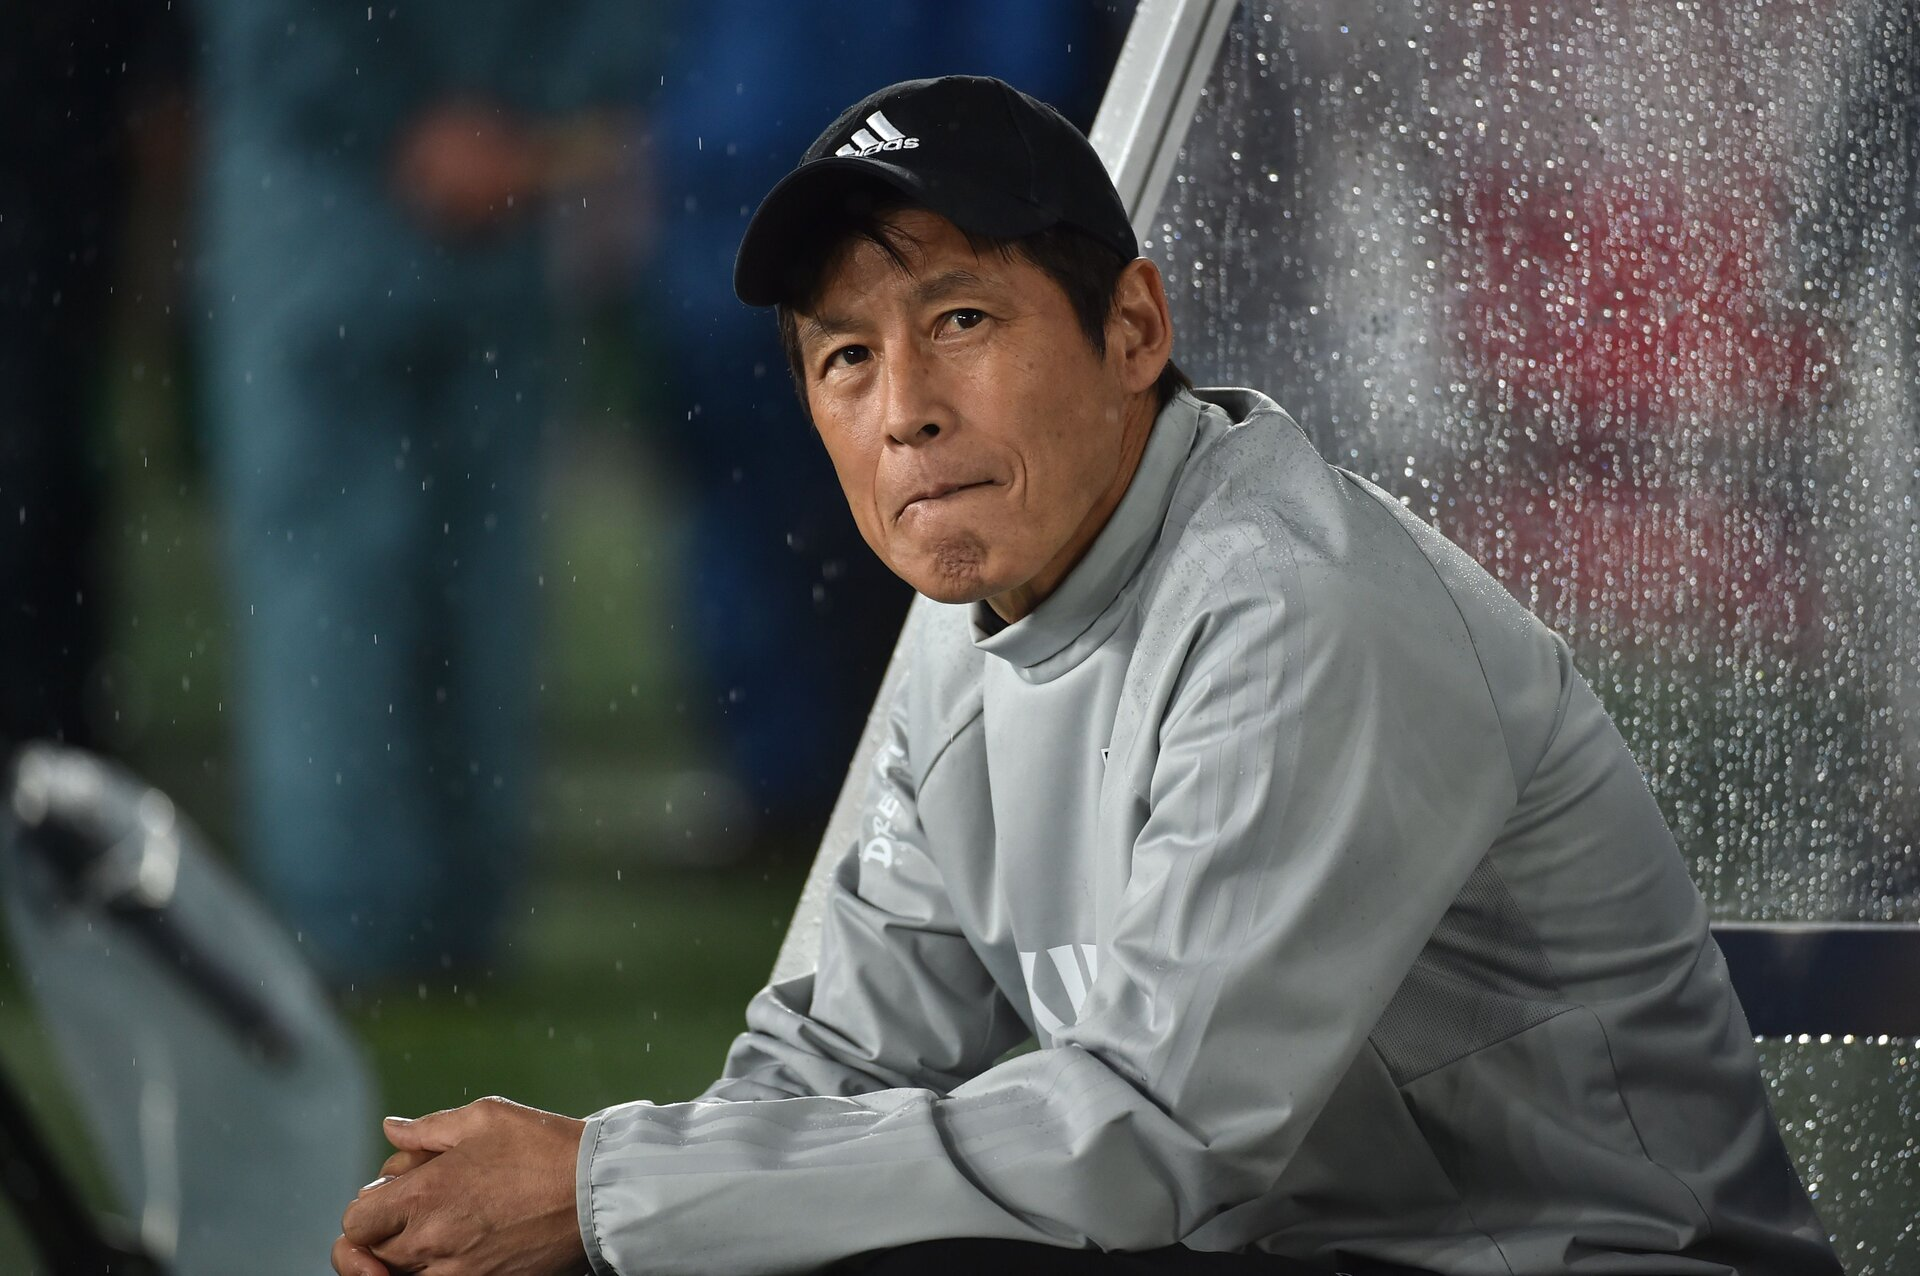 This picture taken on May 30, 2018 shows Japan's national football team head coach Akira Nishino attending the international friendly football match between Japan and Ghana at Nissan Stadium in Yokohama. (Photo by Kazuhiro NOGI / AFP)        (Photo credit should read KAZUHIRO NOGI/AFP/Getty Images)